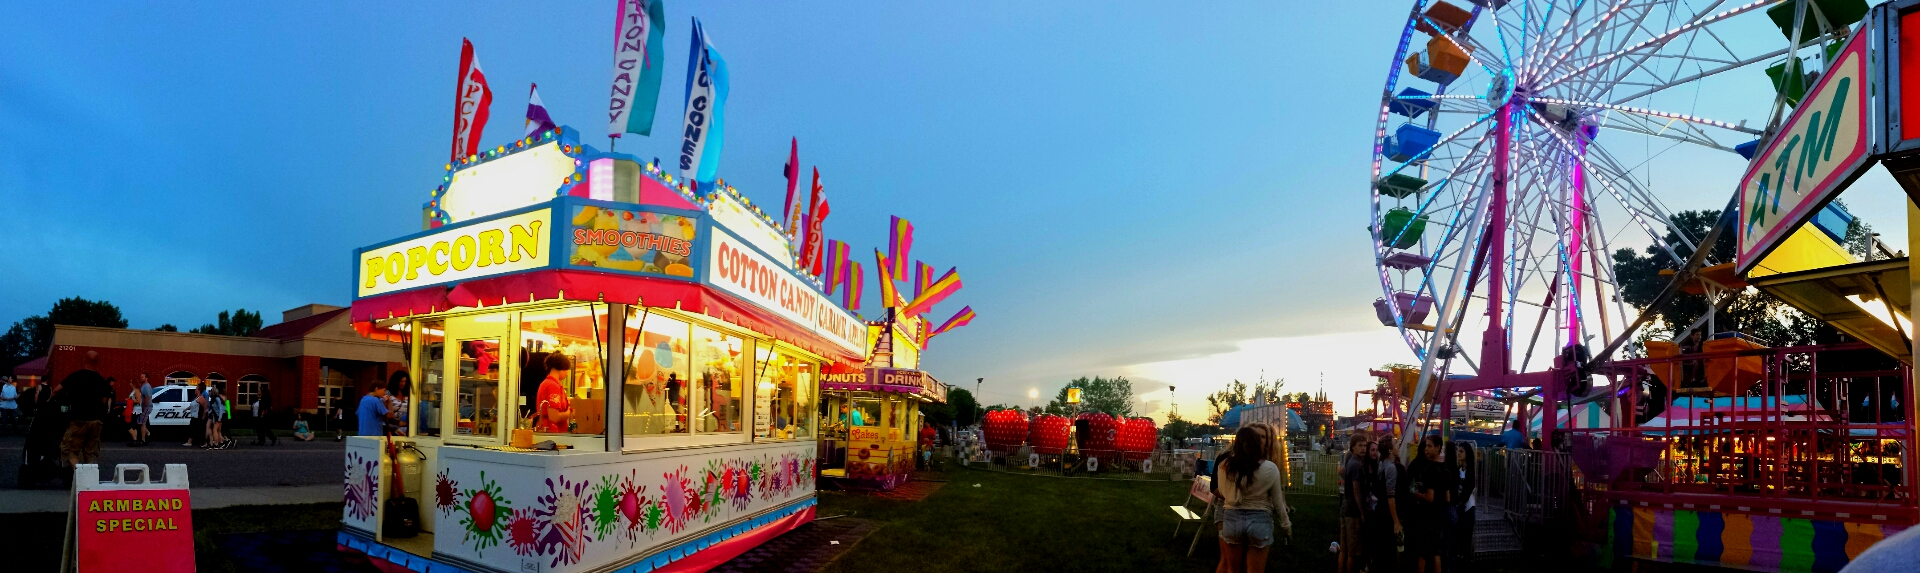 Picture of carnival at Rockin Rogers